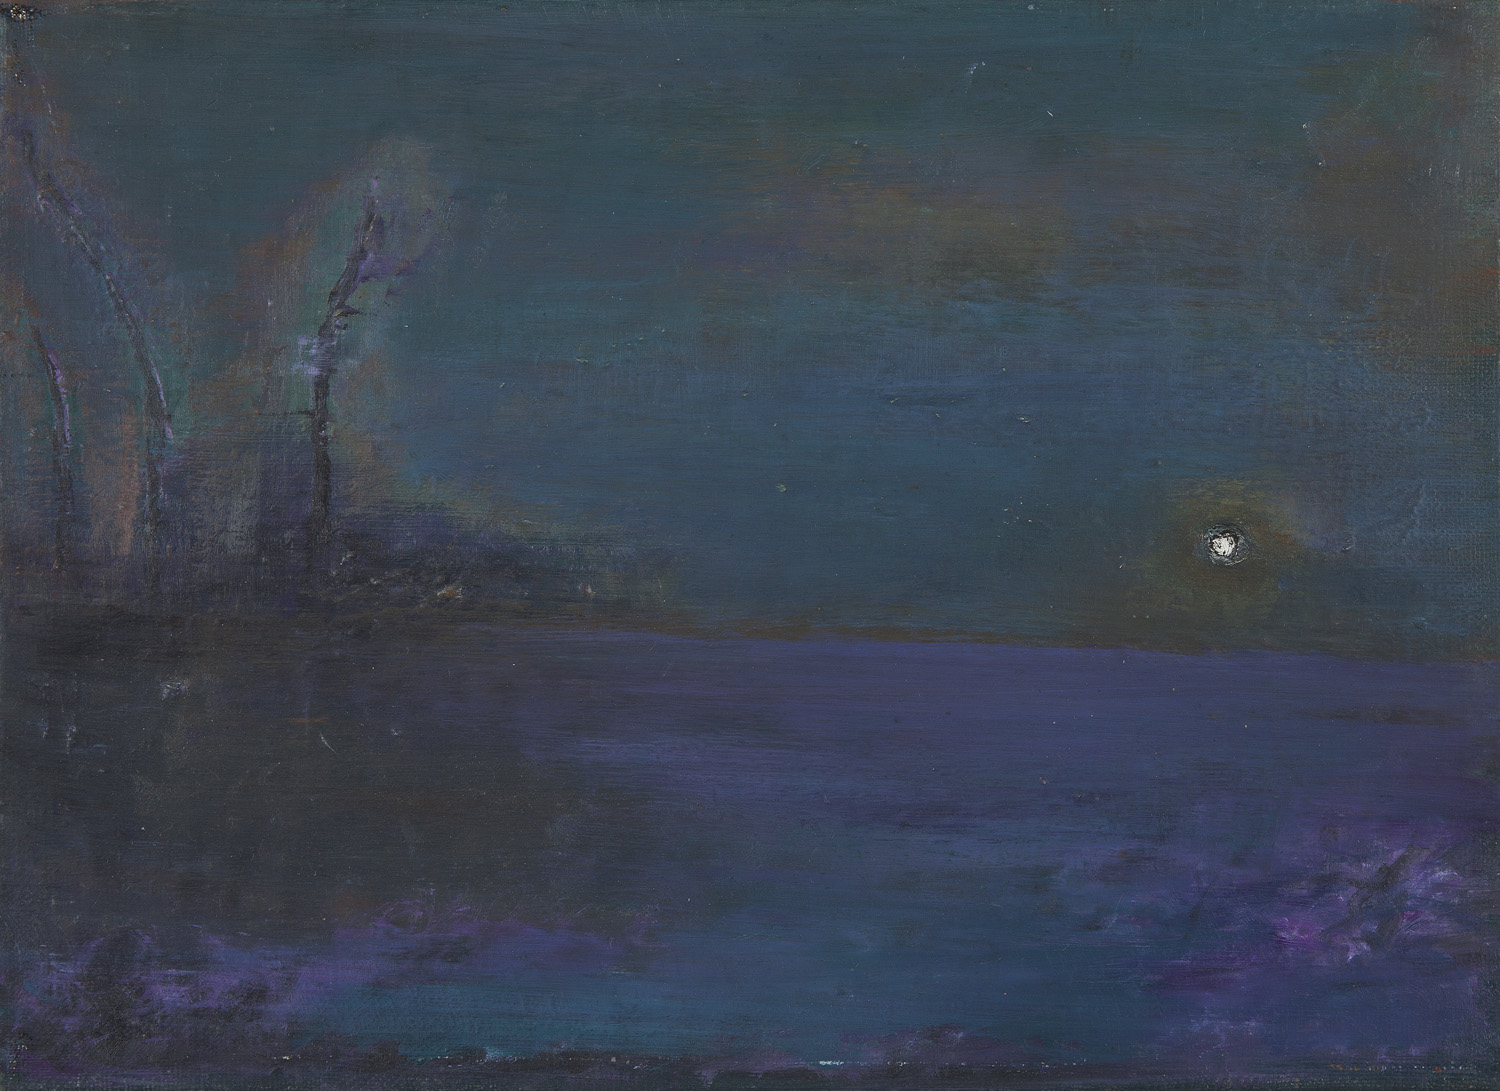 The Earth as Viewed from Outer Space, 1998, Oil on canvas, 24x33.5cm